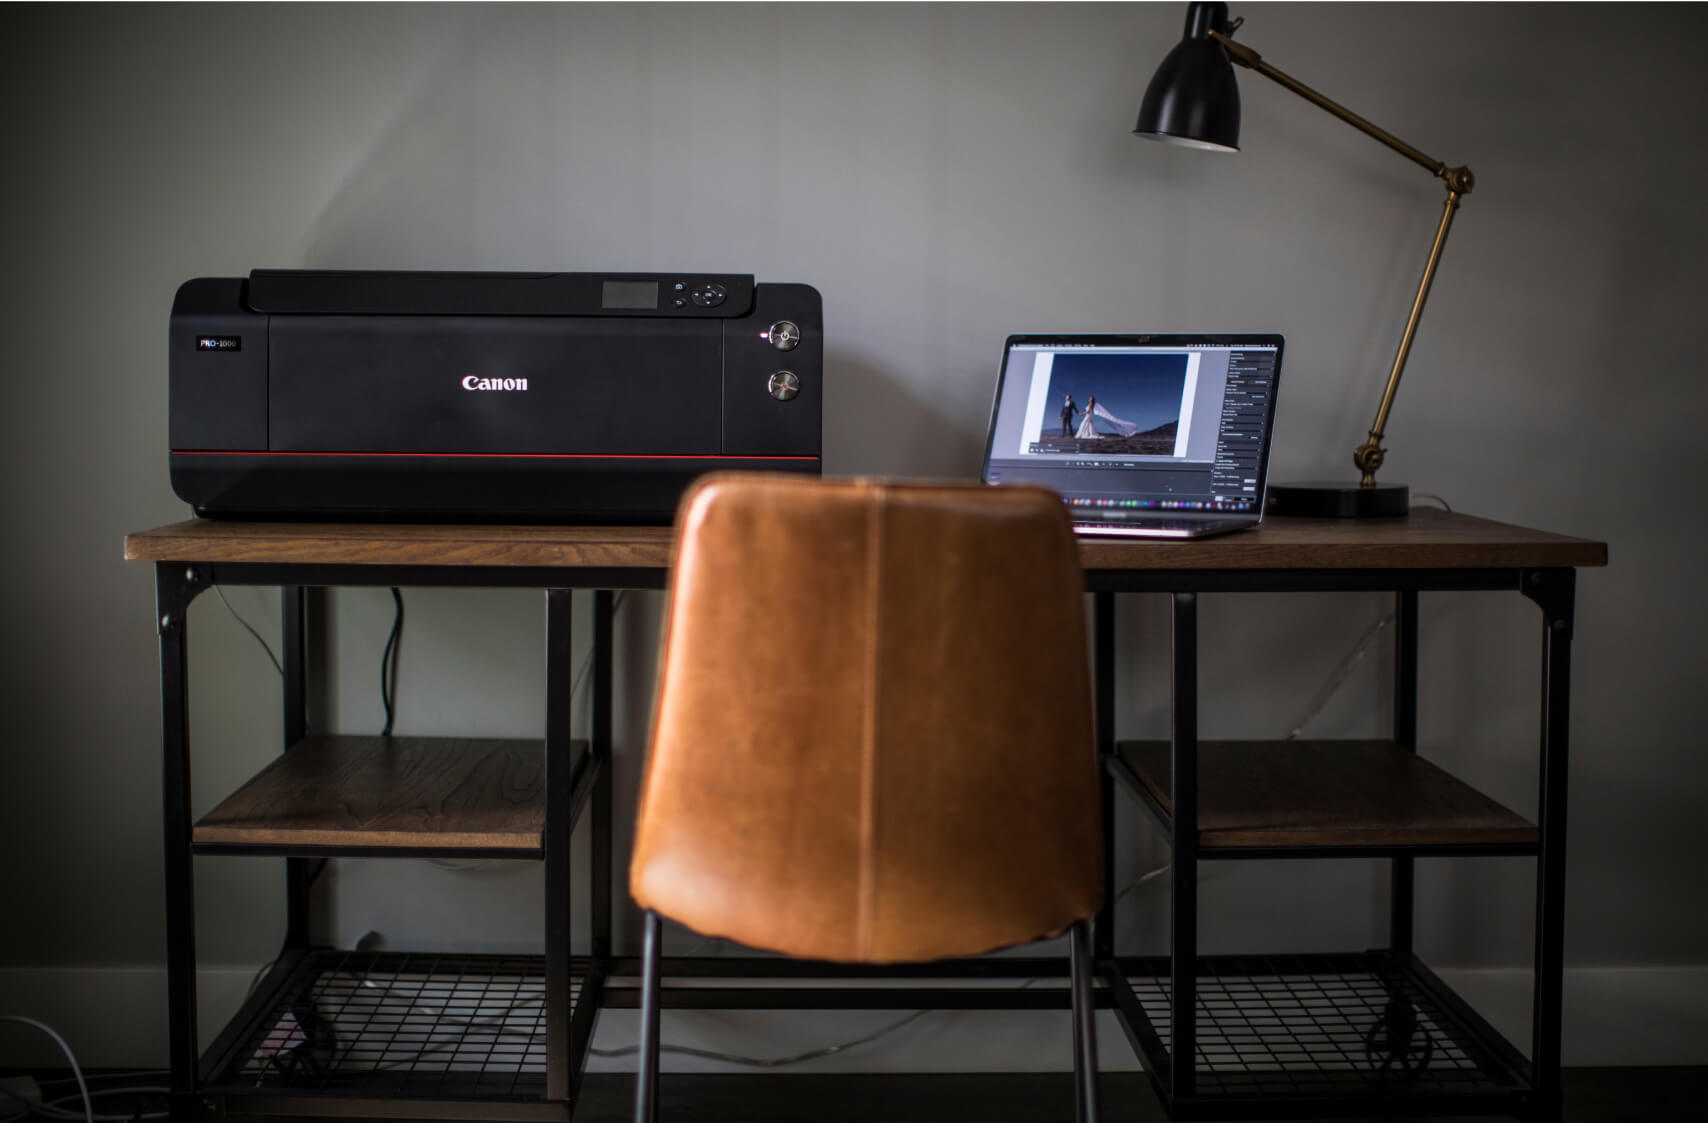 Pulled back shot of Canon Printer and laptop on a desk